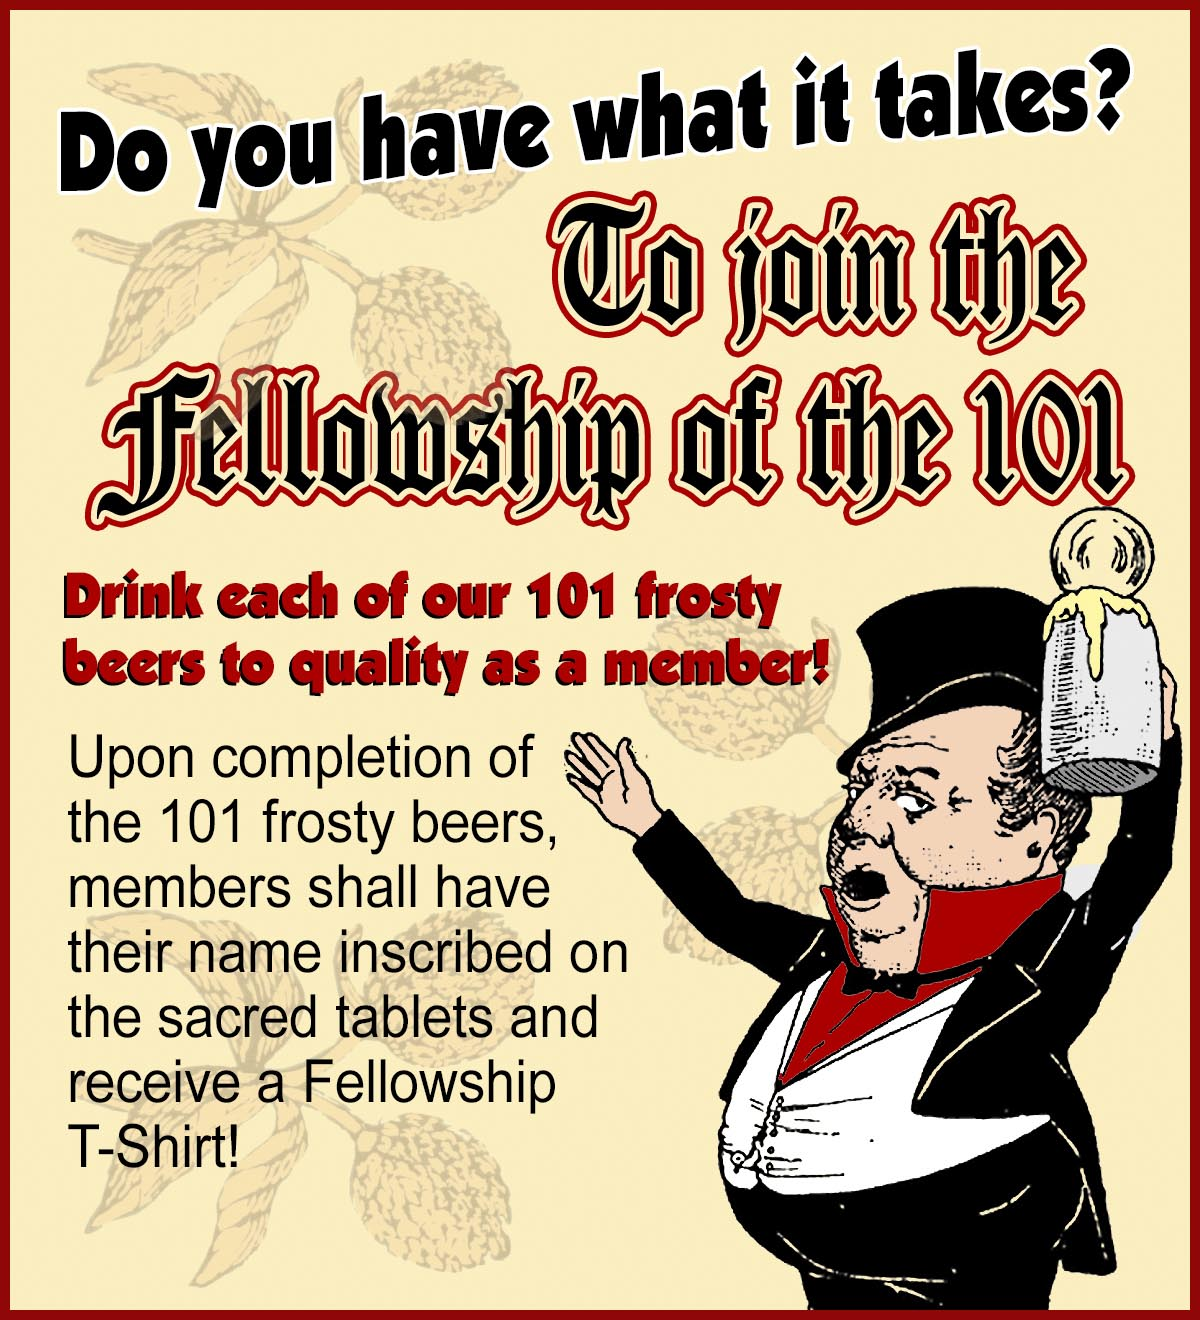 Fellowship Of The 101 For Wesbite